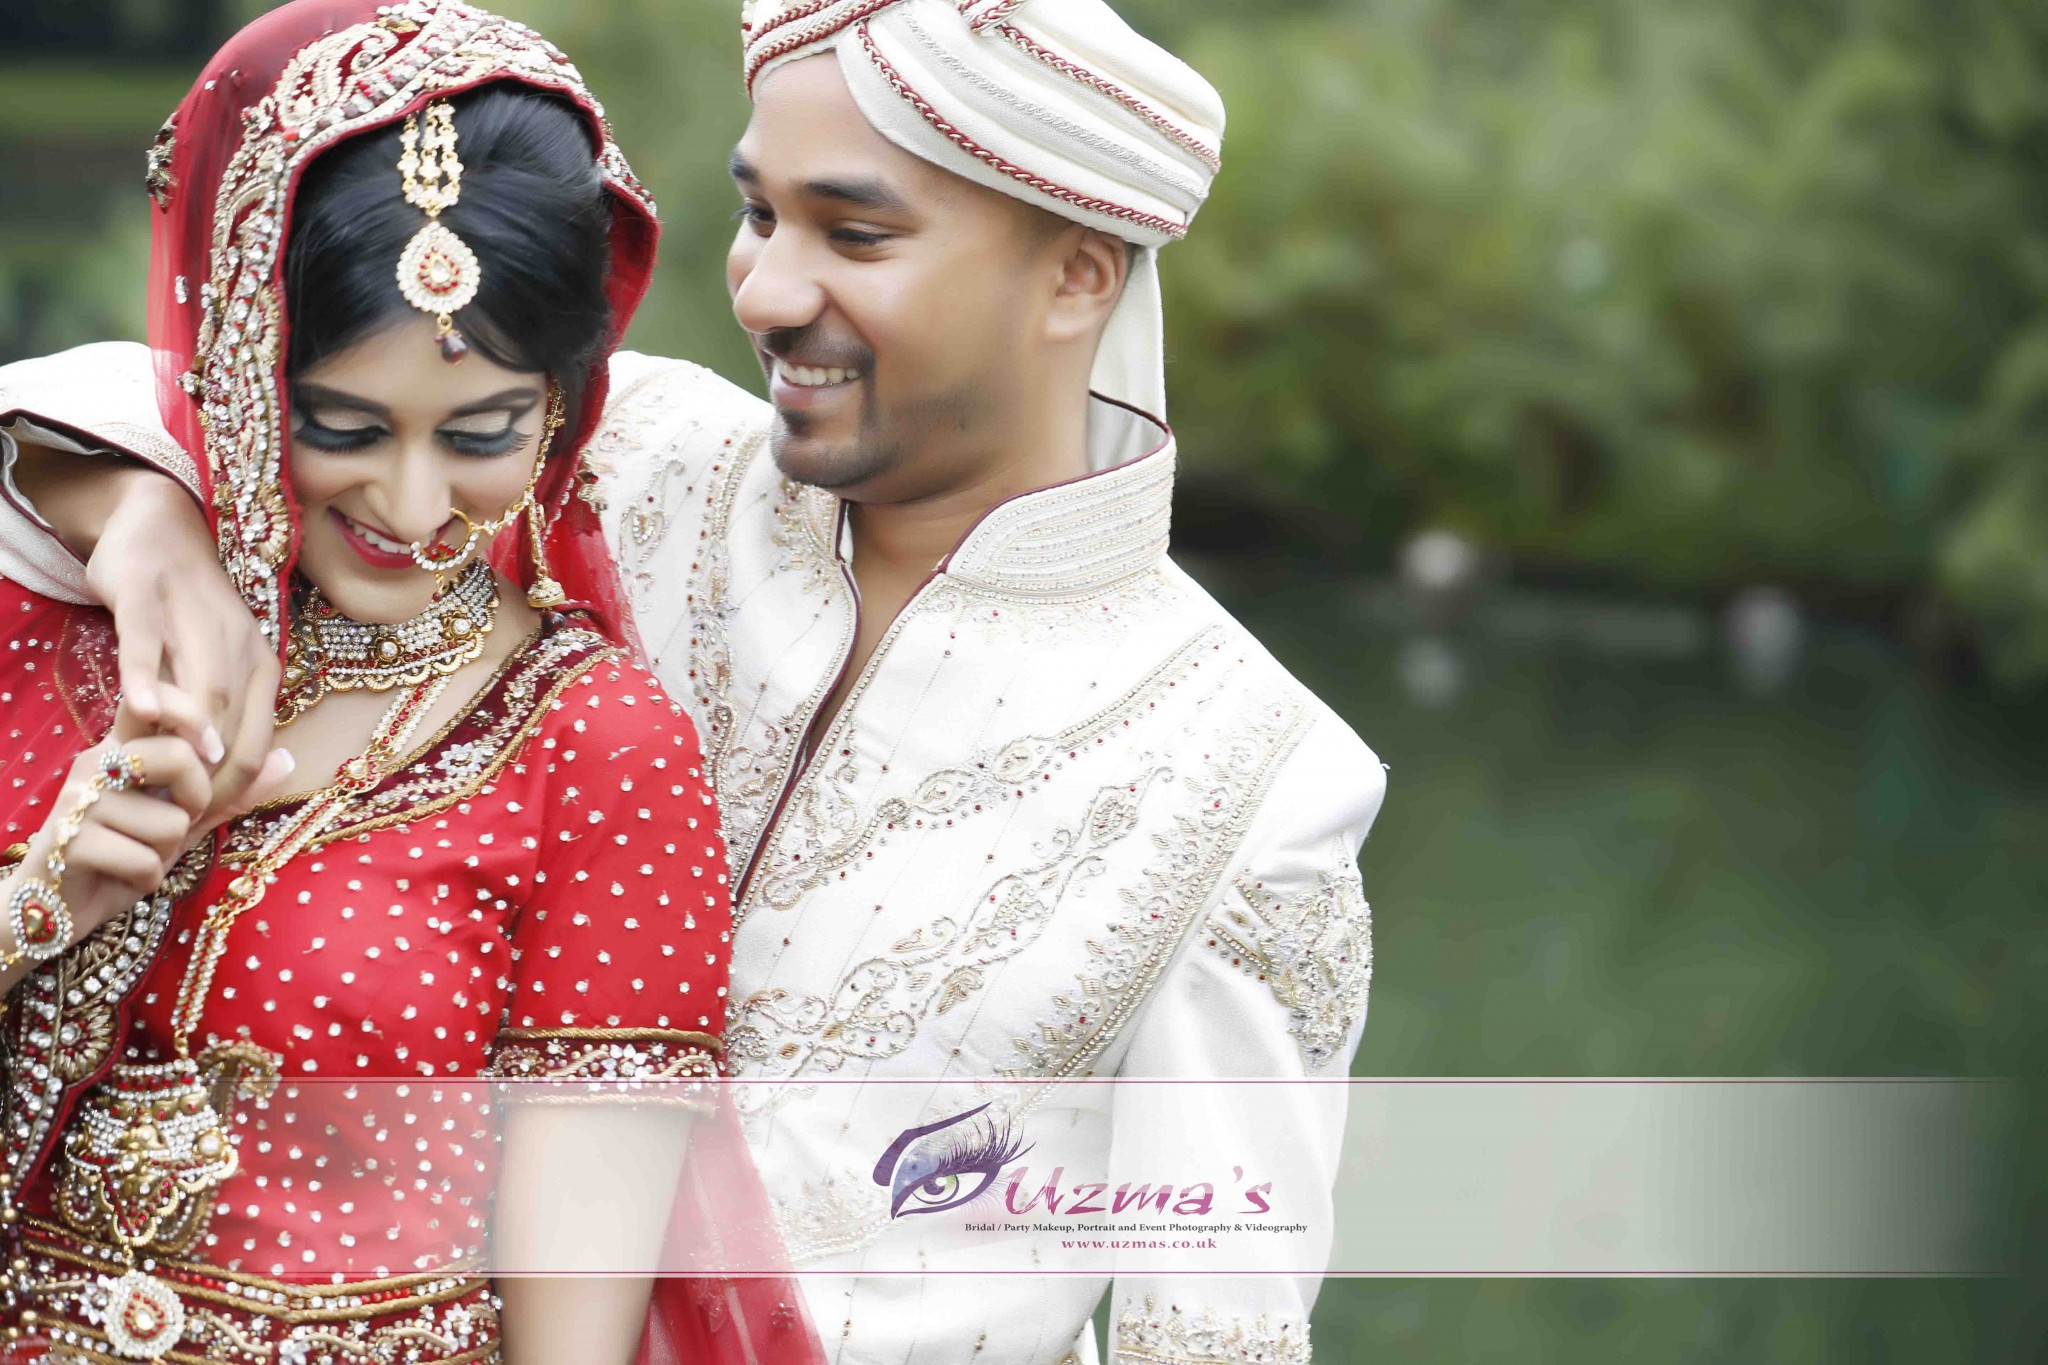 Asian Wedding Photography in UK groom embracing bride - Asian Wedding Uk Magazine